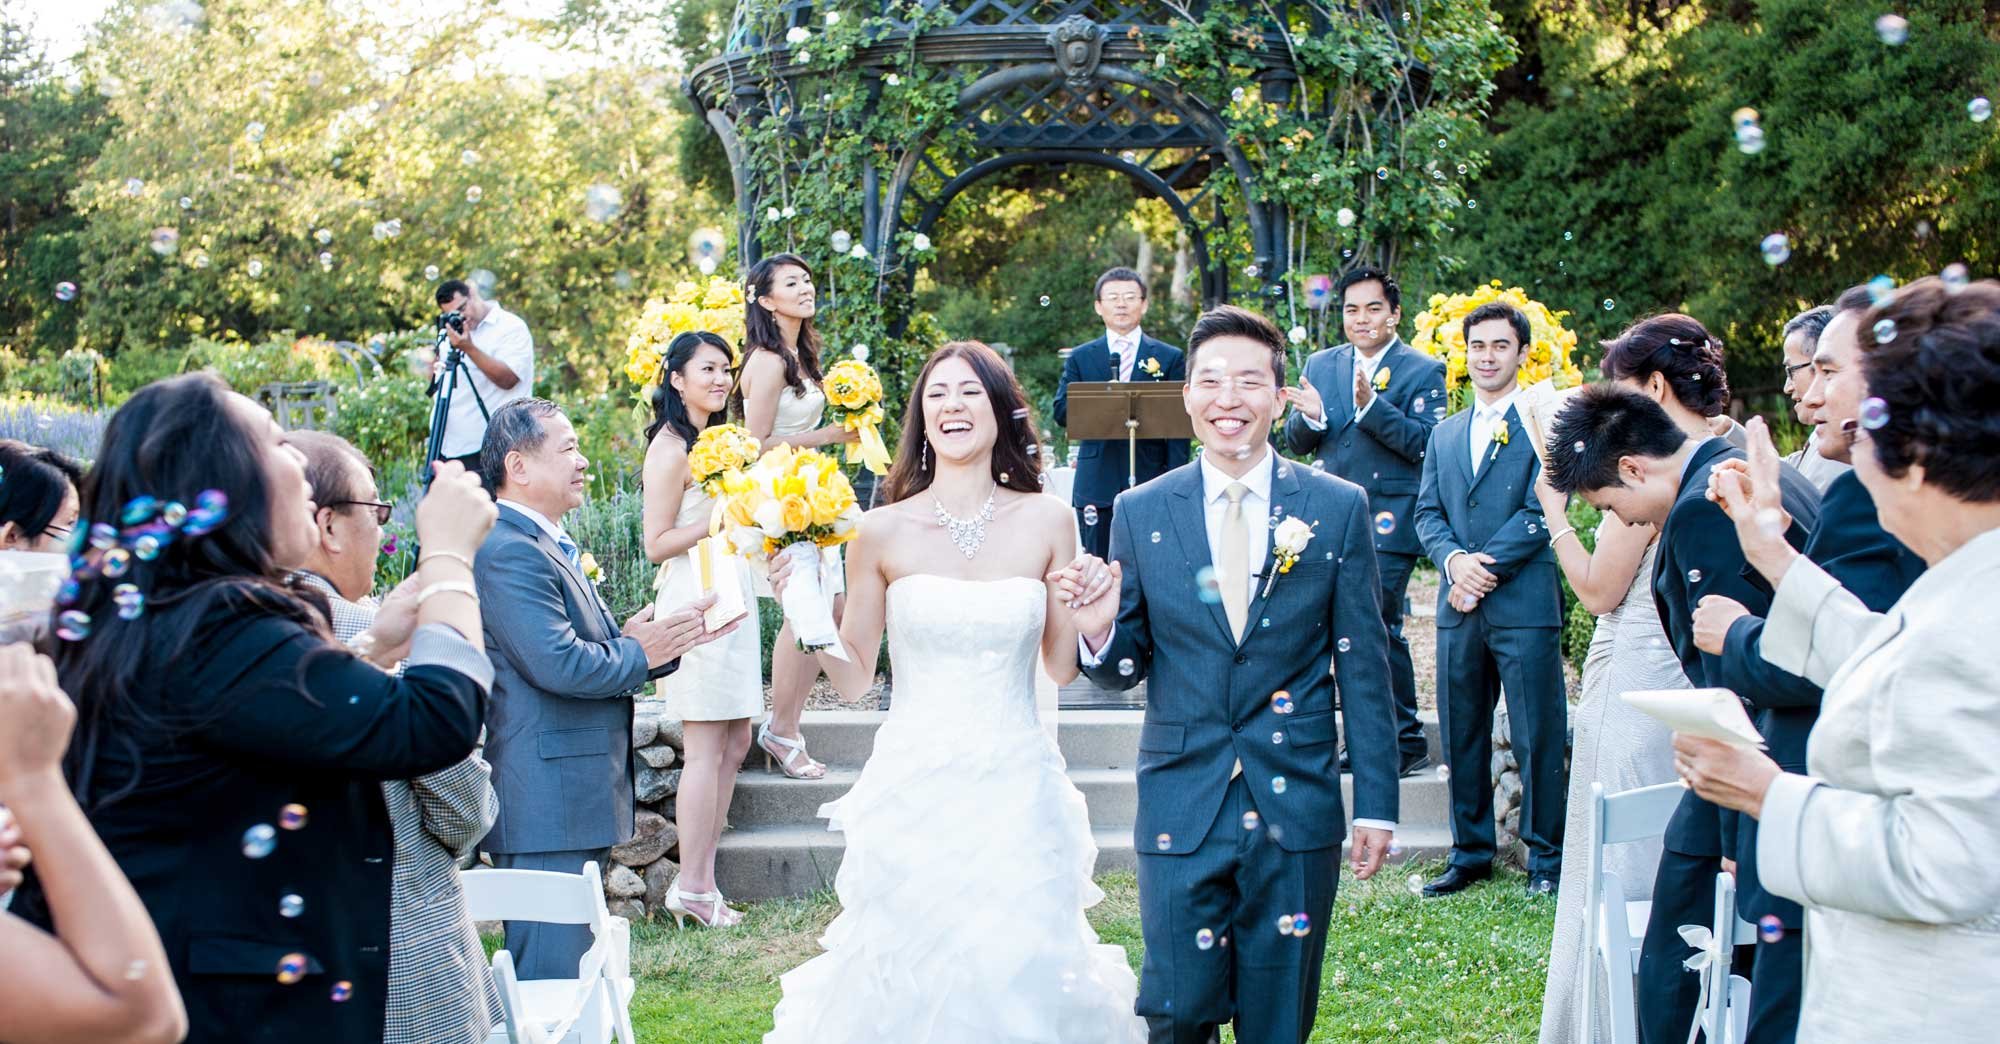 Angie & James' Descanso Gardens Wedding featured slider image